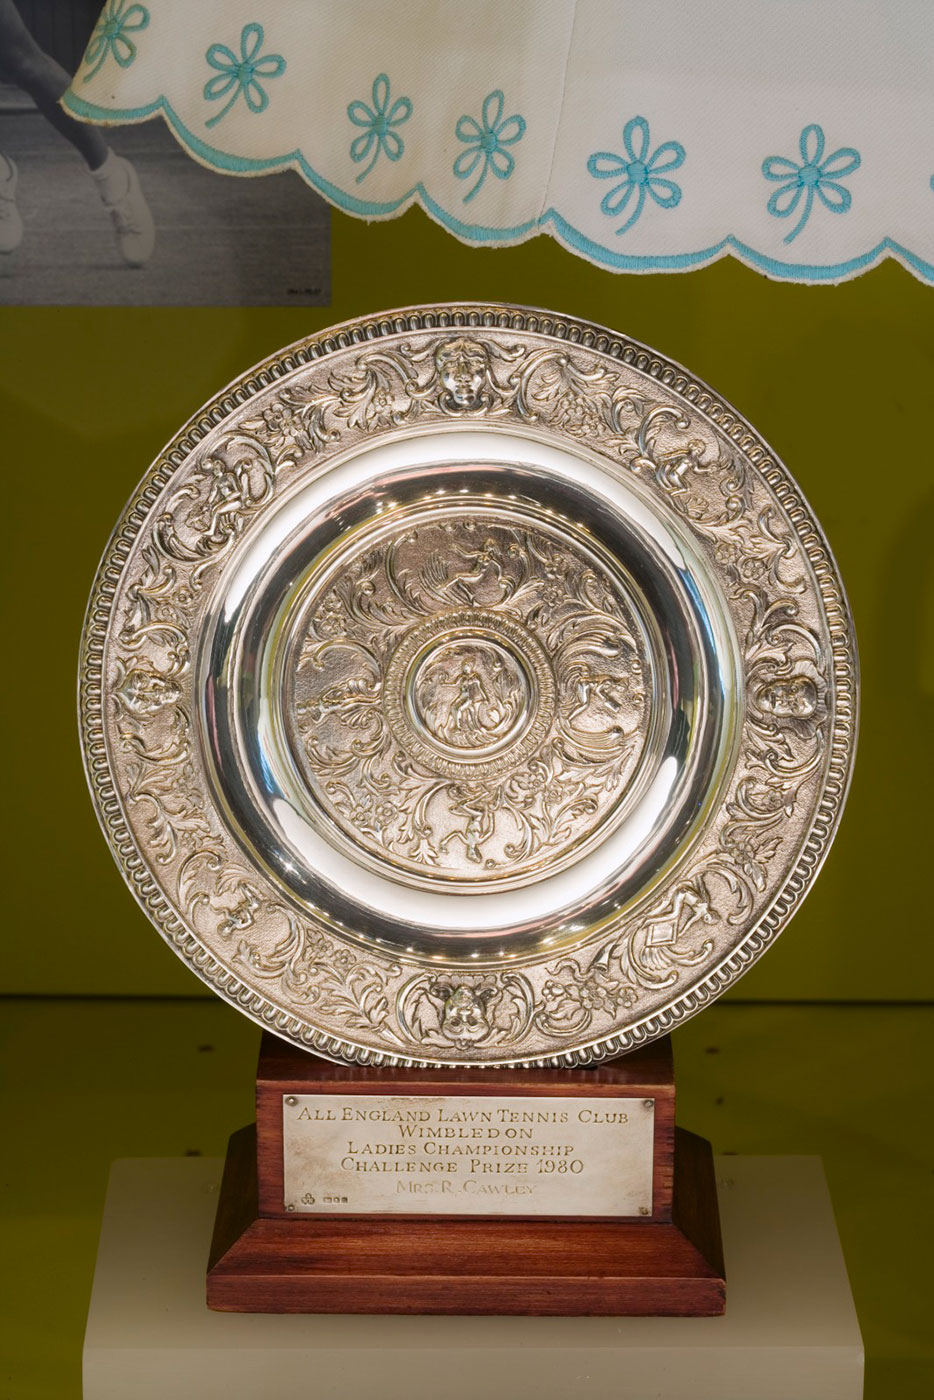 Ornate silver disc presented on a wooden stand. Inscribed text on the stand reads: 'All England Lawn Tennis Club Wimbledon Ladies Championship Challenge Prize 1980 awarded to Mrs R Cawley'. - click to view larger image